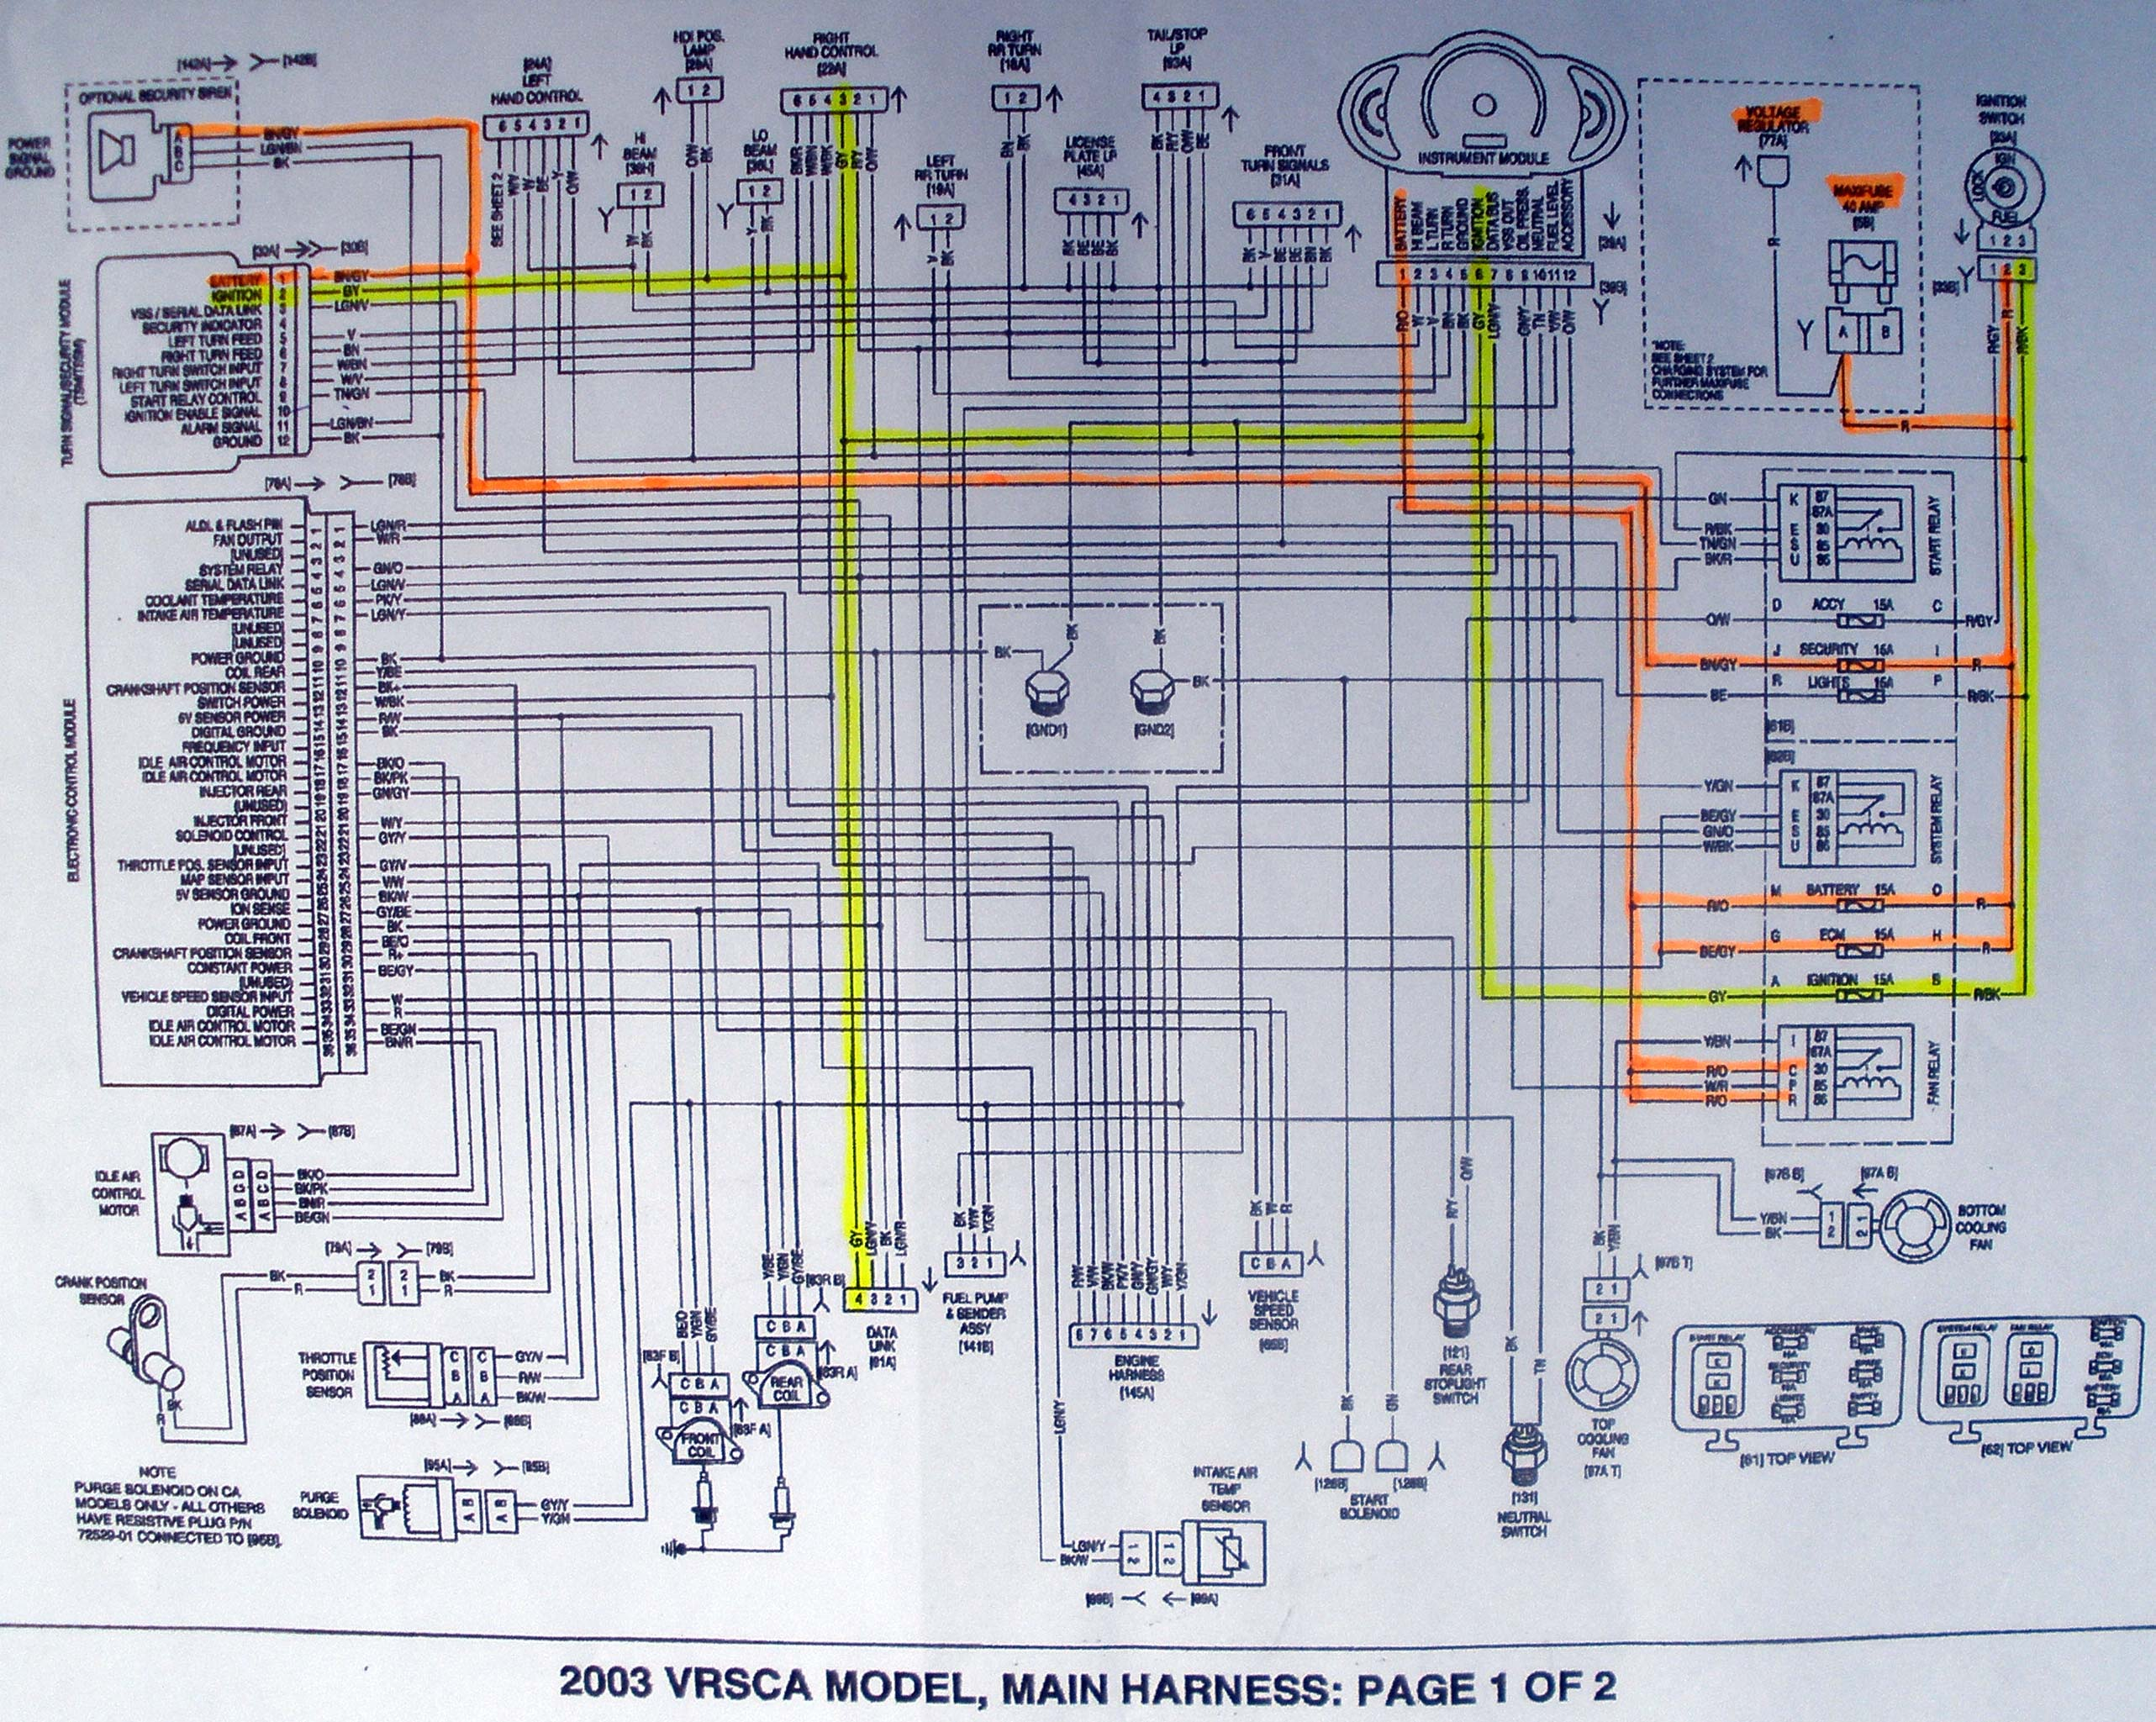 2008 r6 wiring harness diagram #18 Ninja 250 Wiring Diagram 2008 r6 wiring harness diagram